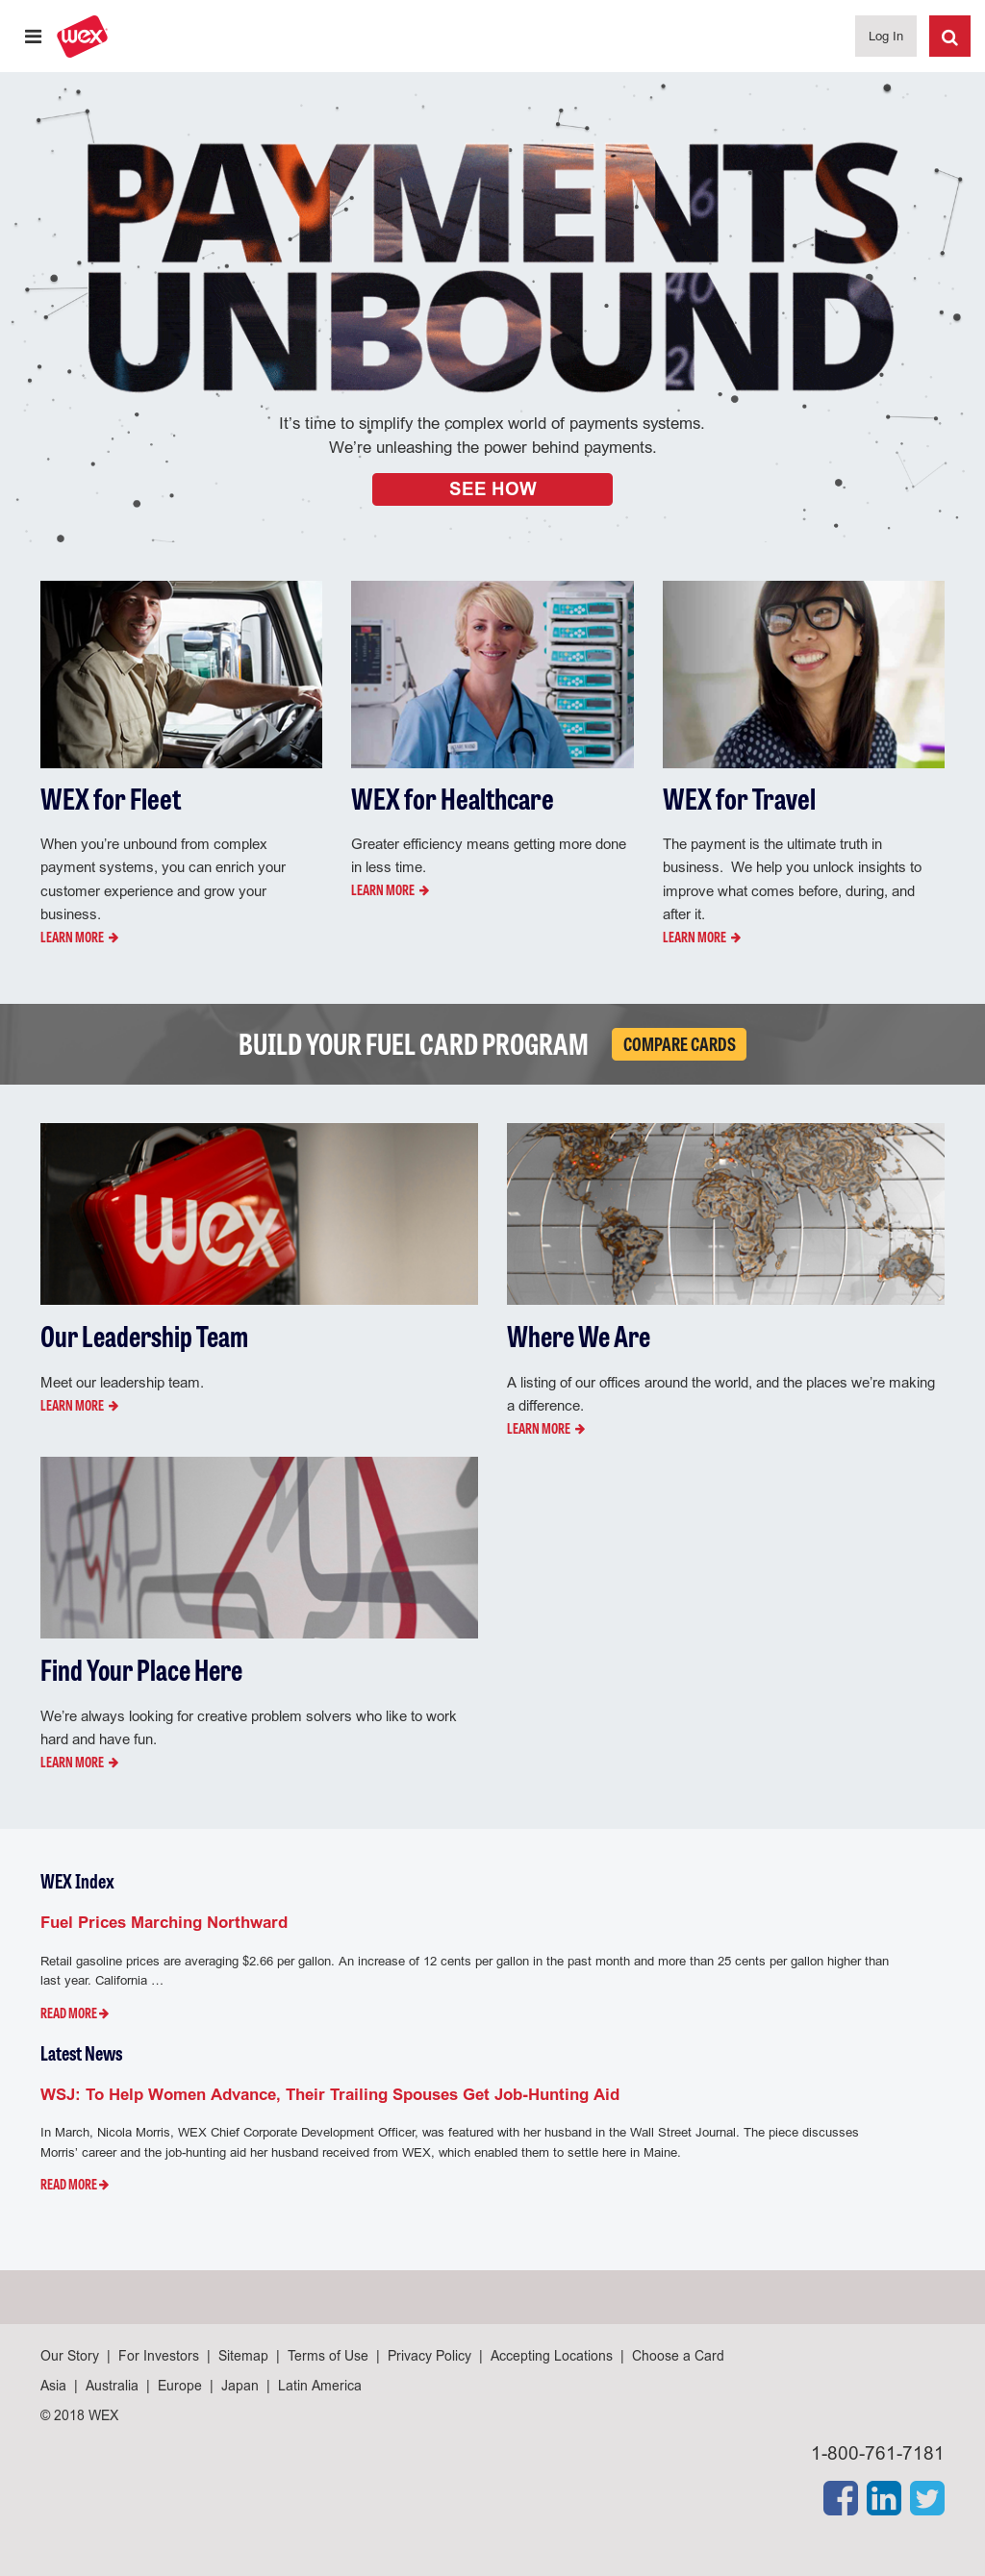 WEX Competitors, Revenue and Employees - Owler Company Profile